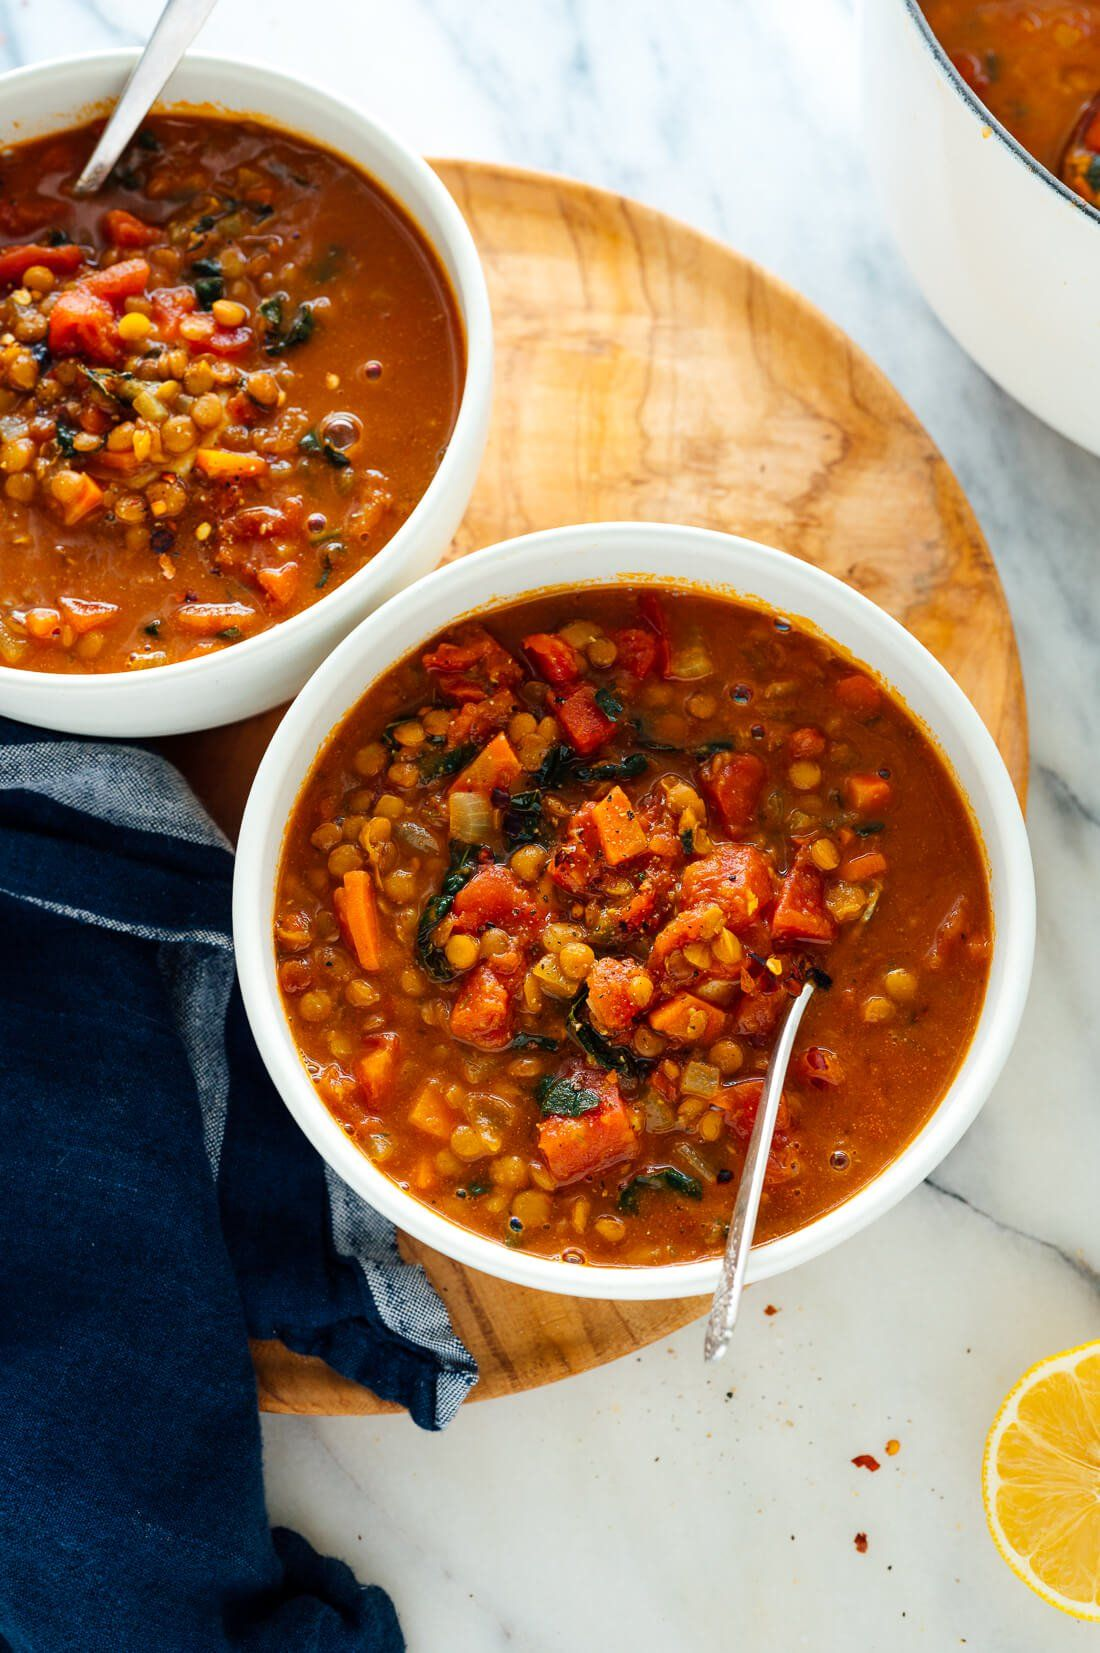 Best Lentil Soup This hearty lentil soup recipe can be as spicy (or not) as you want it to be! With over 500 five-star reviews, this recipe is sure to become your favorite lentil soup!